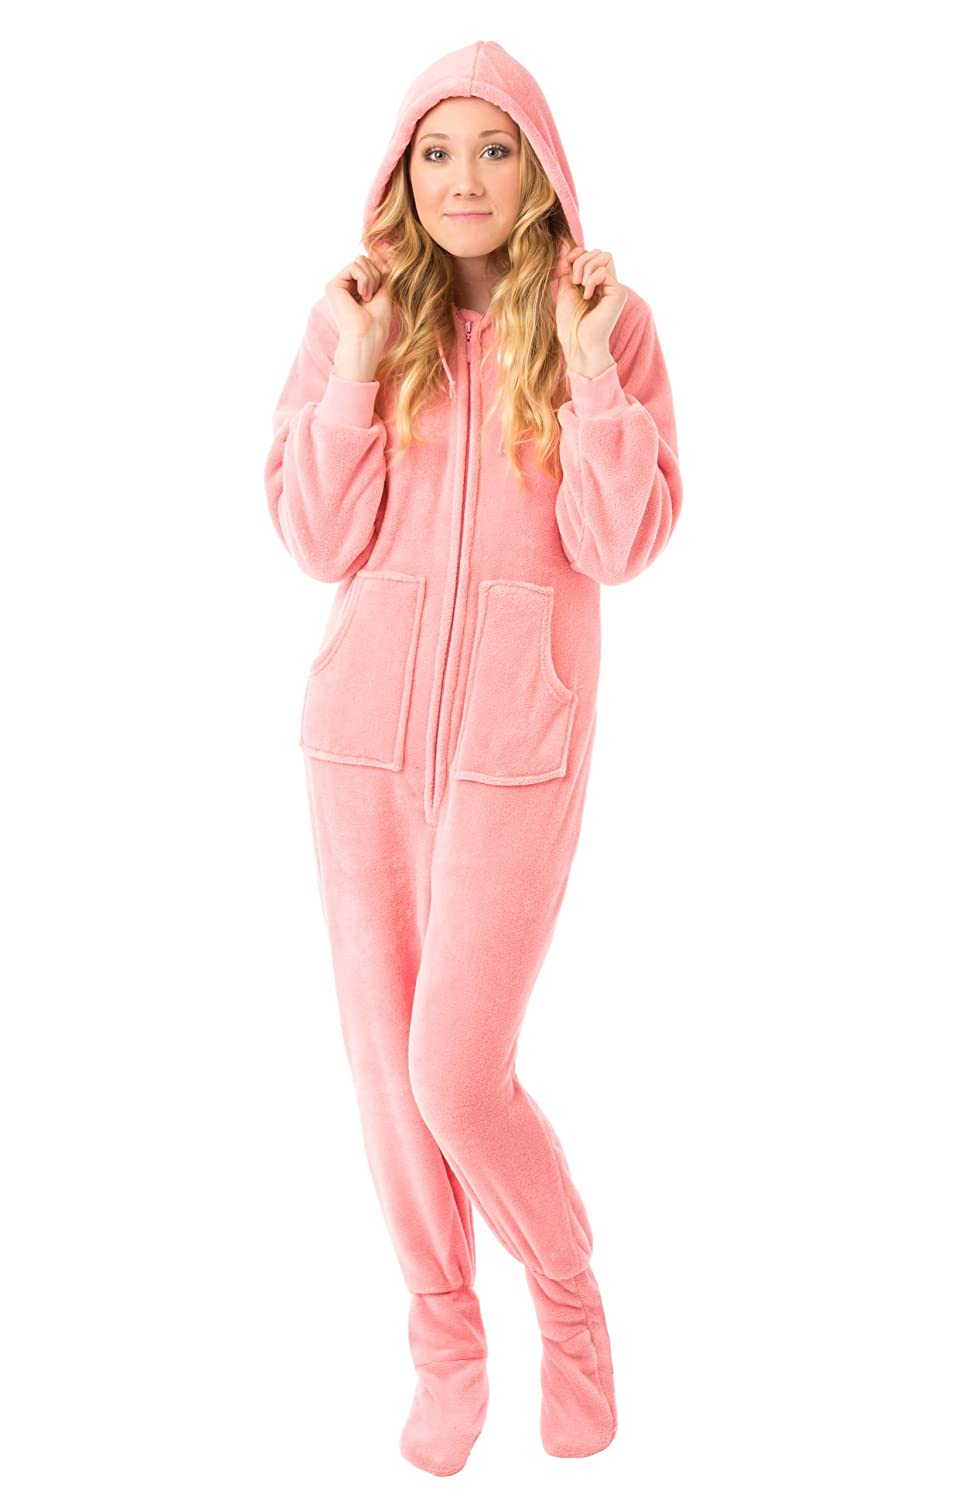 acefd4920 Pink Plush Women s Hoodie Footed Pajama Onesie with Drop Seat at ...